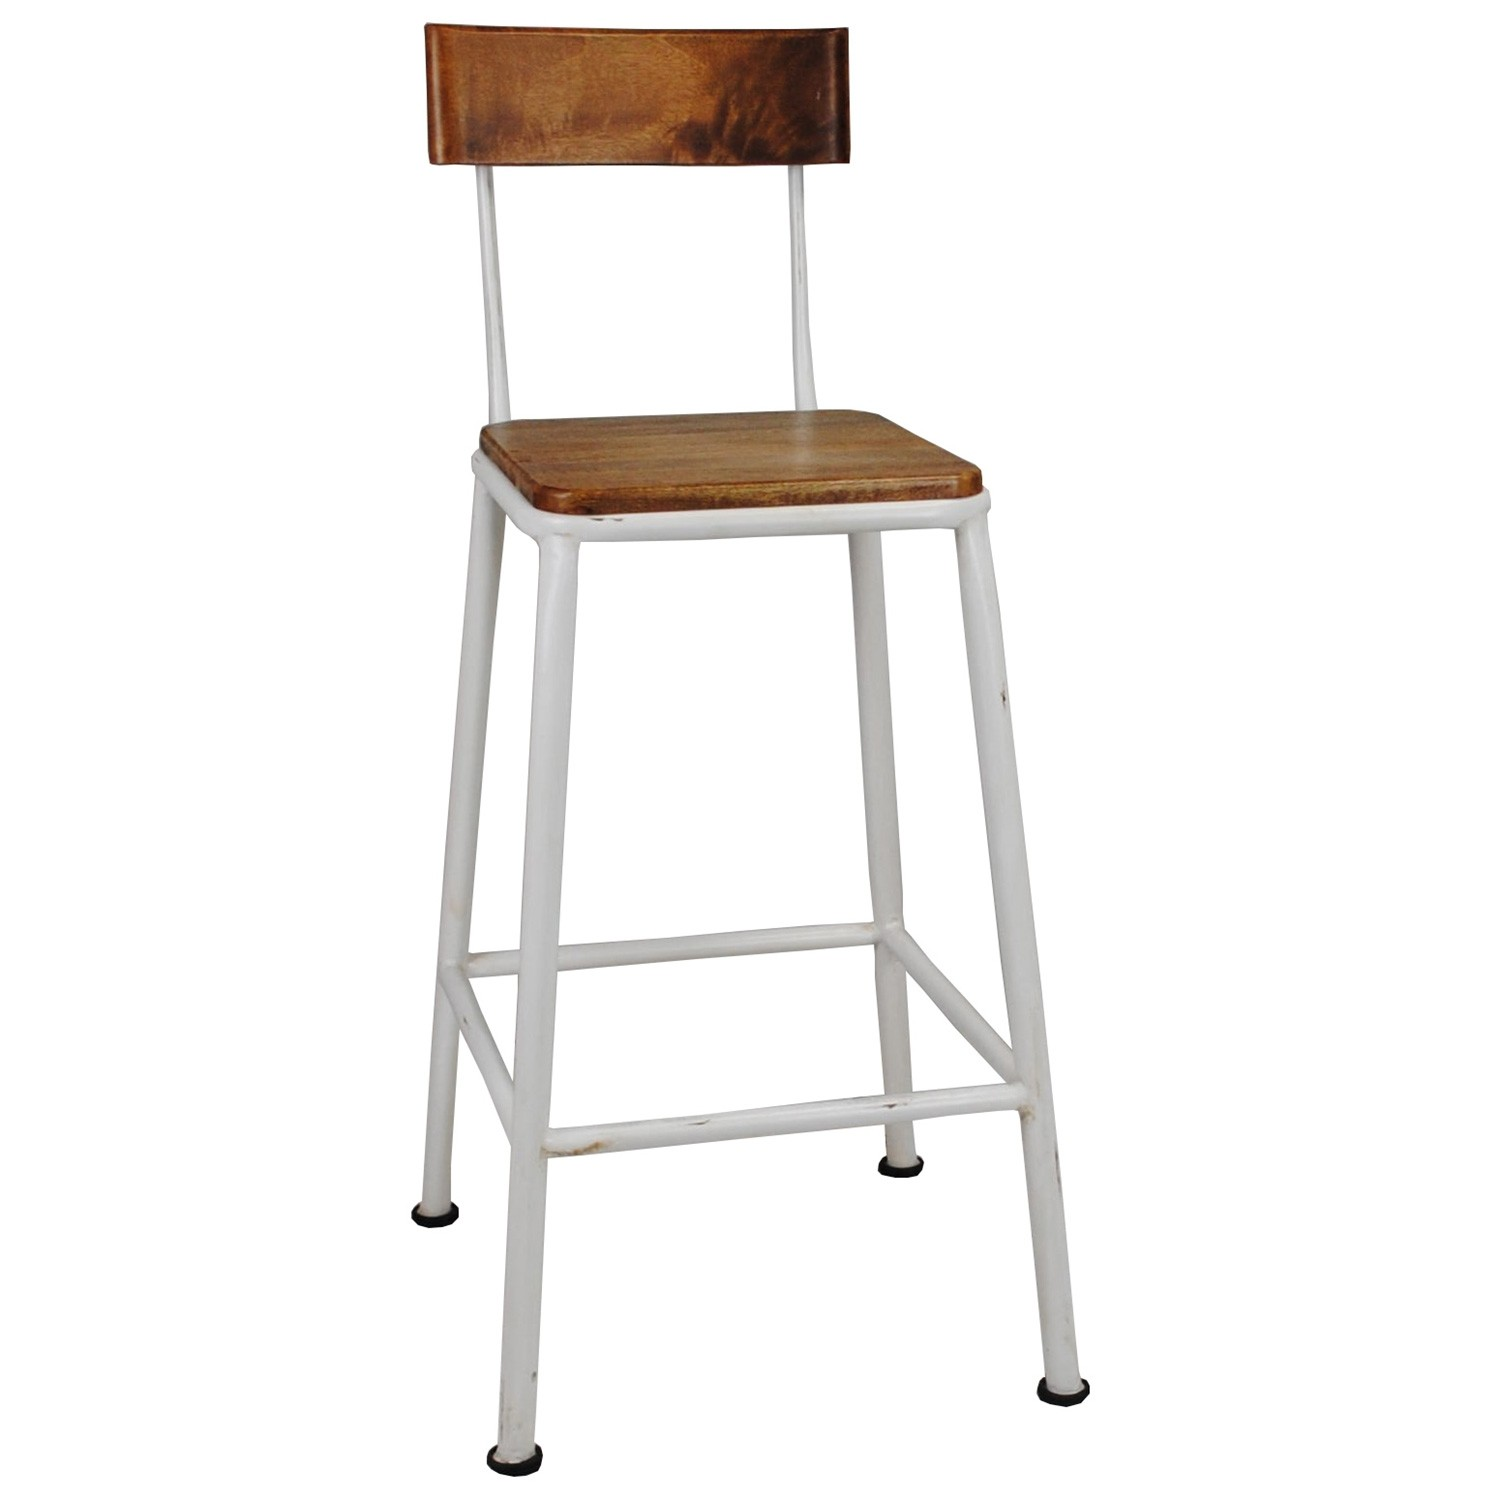 Hunston Metal Counter Chair with Timber Seat,  White